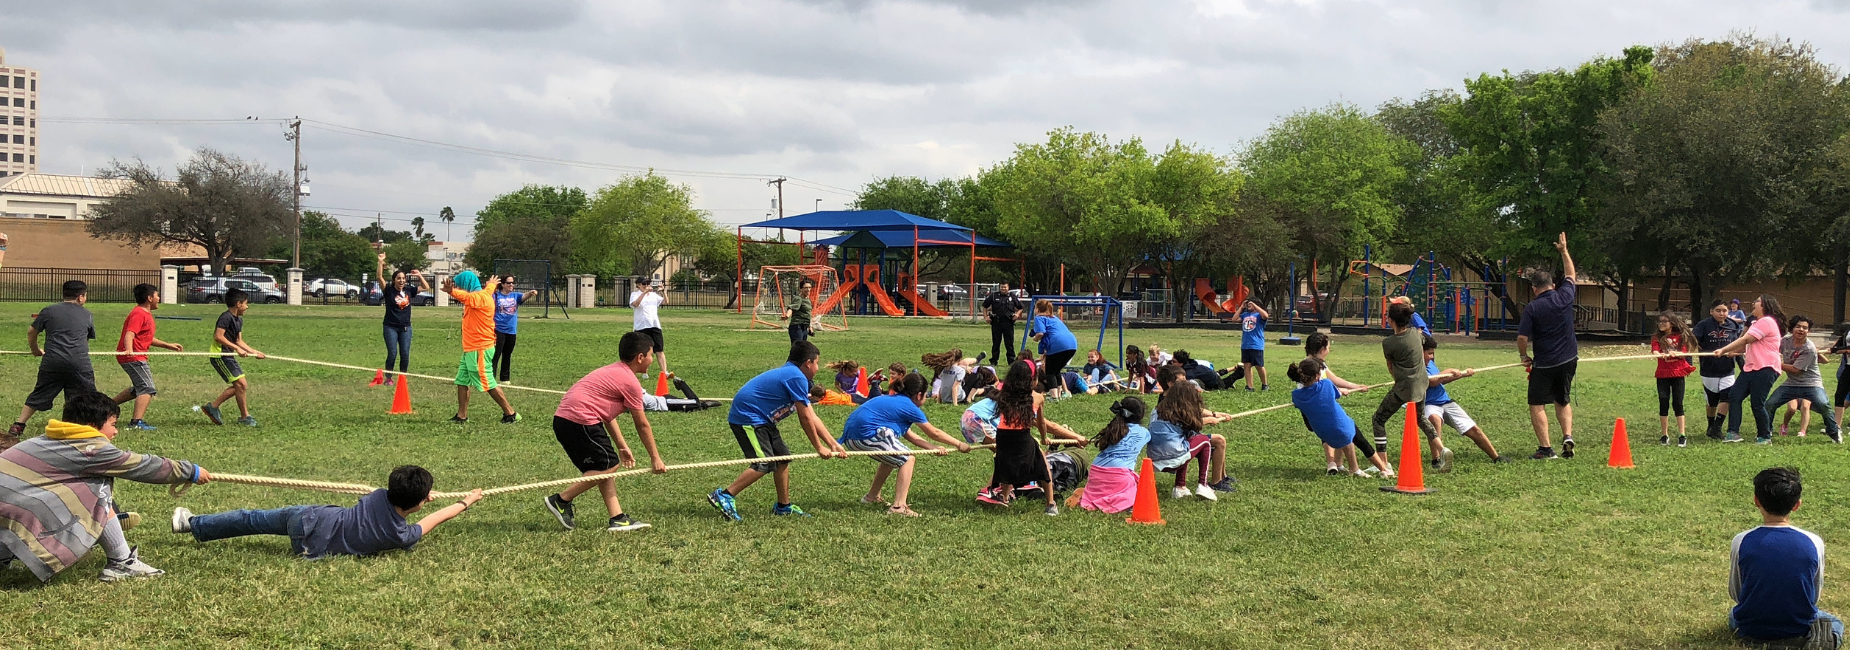 Milam Field Day Tug of War